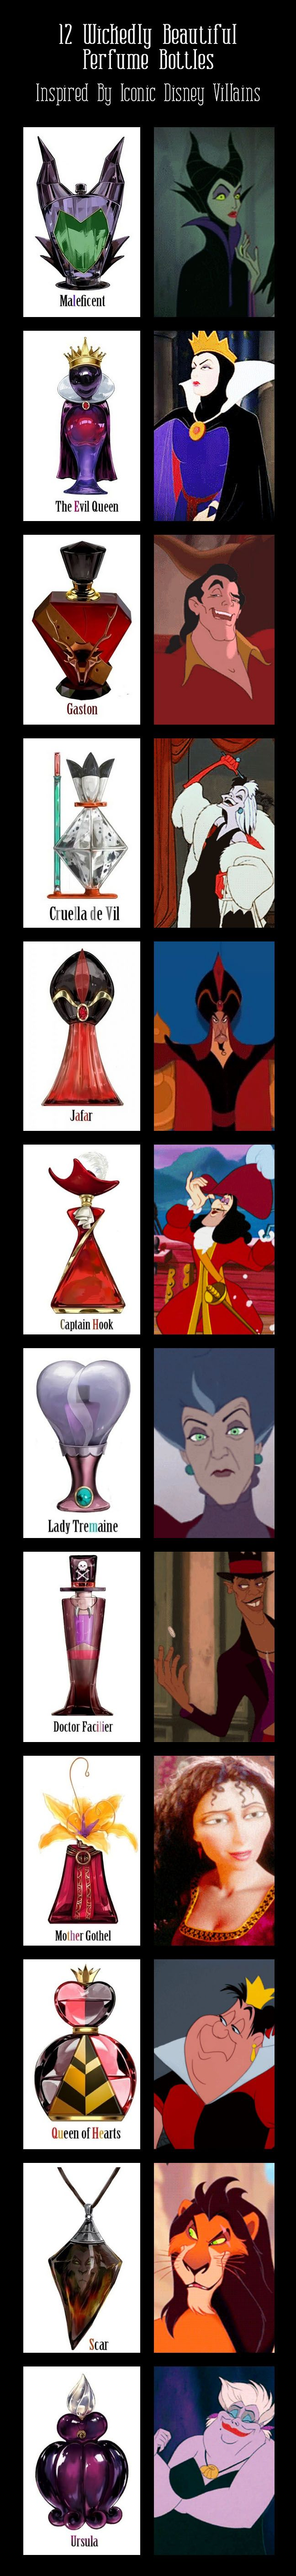 12 Wickedly Beautiful Perfume Bottles Inspired By Iconic Disney Villains  --  I want them all.